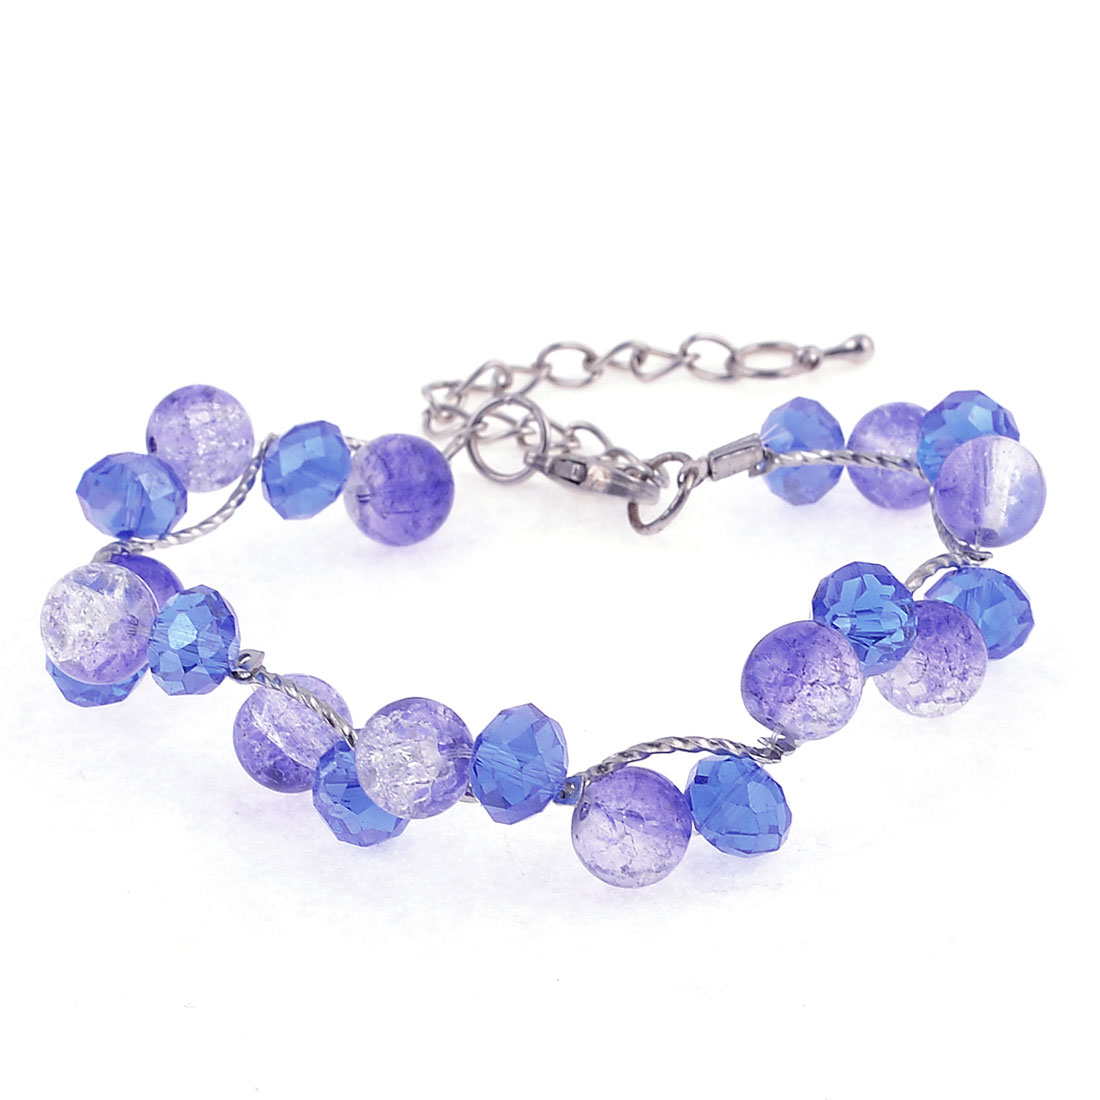 Silver Tone Metal Hook Blue Plastic Round Beads Bracelet Bangle for Lady